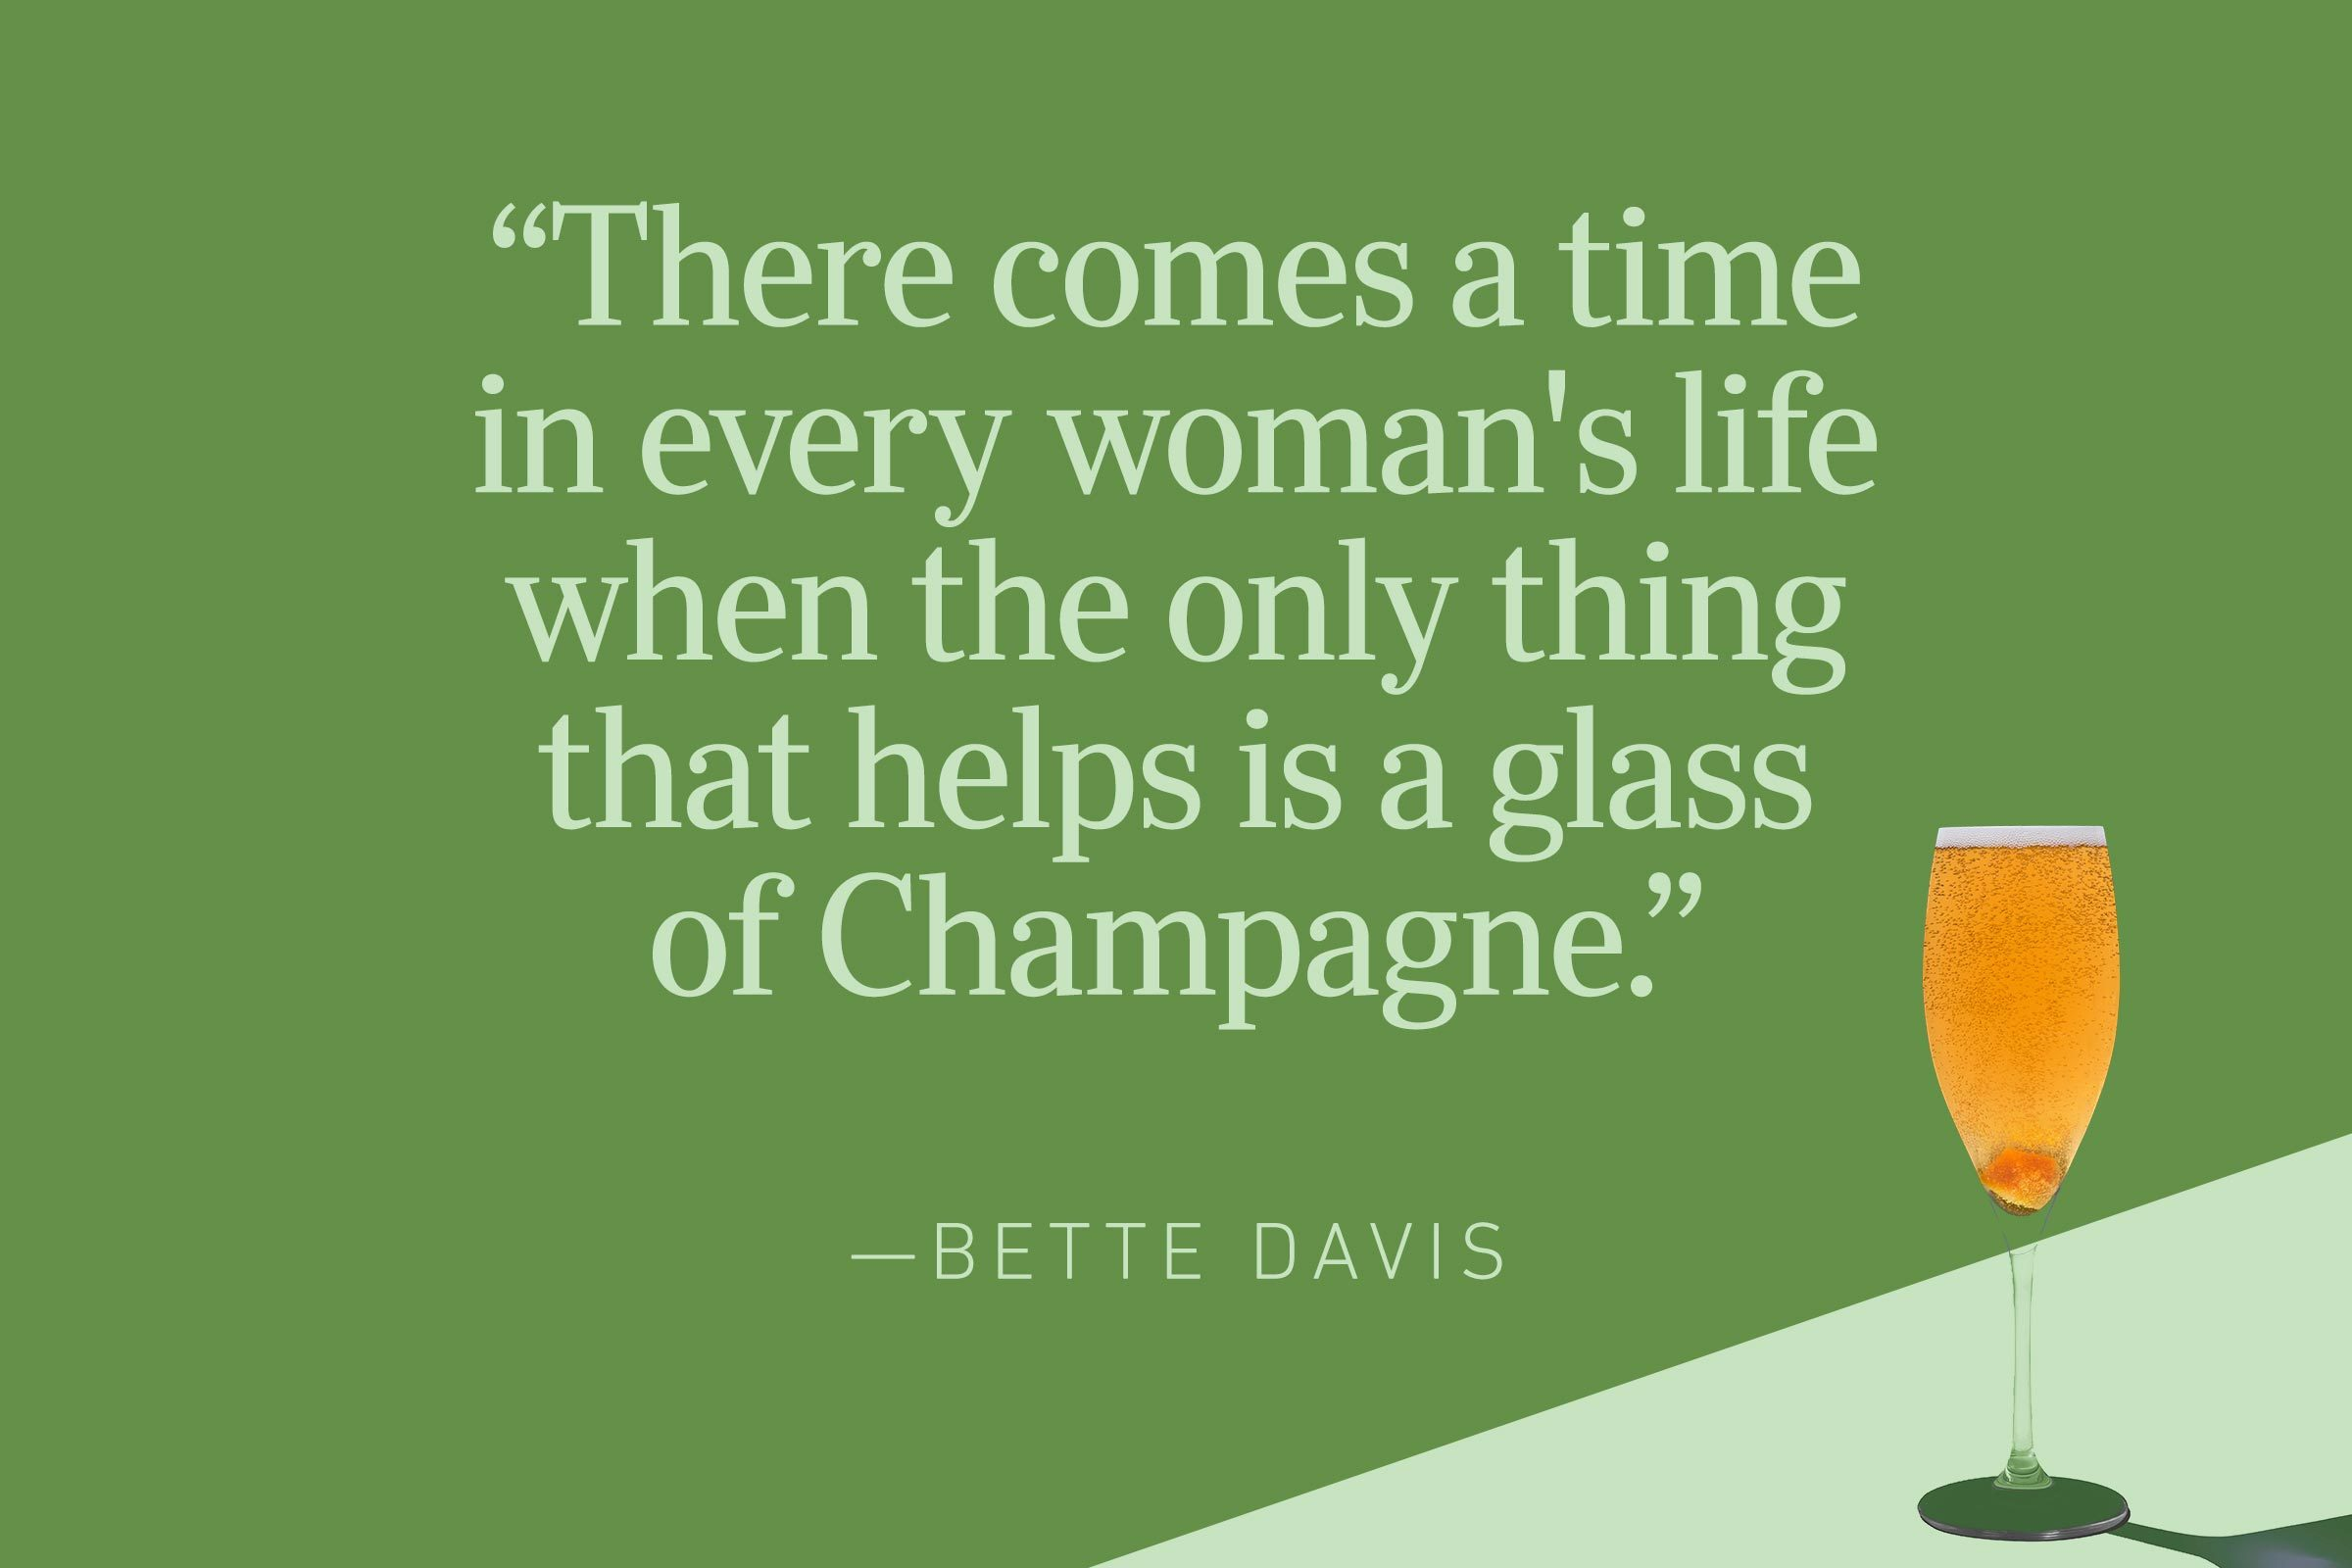 """""""There comes a time in every woman's life when the only thing that helps is a glass of Champagne.""""—Bette Davis"""